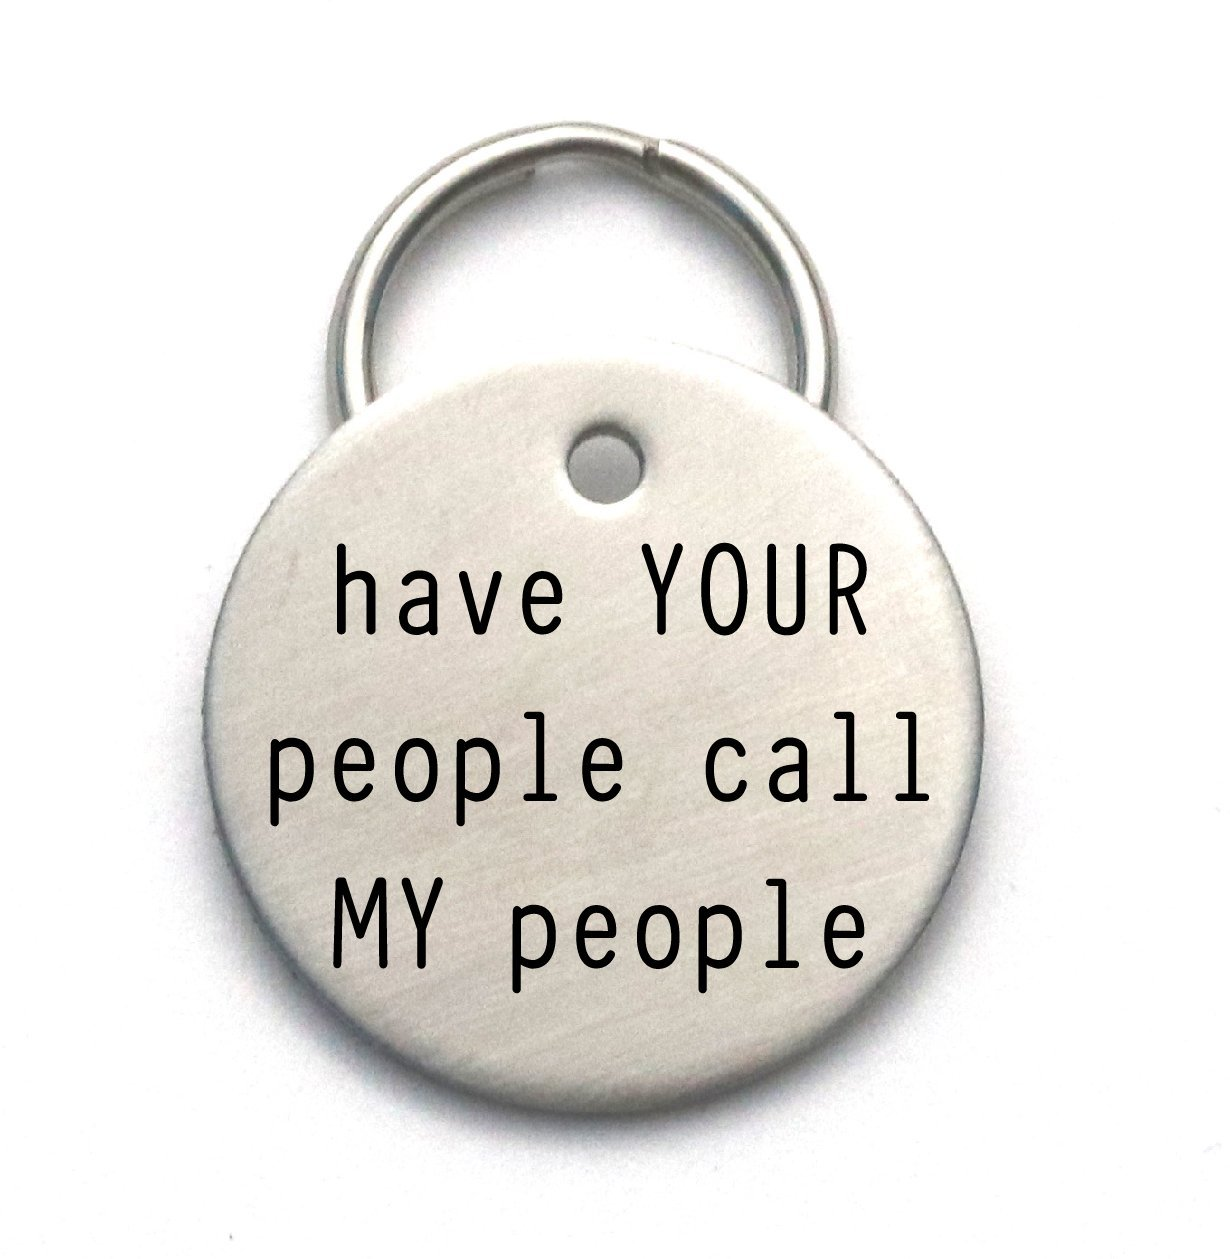 Have Your People Call My People - Funny Dog Tag - Customizable Pet ID - Unique Personalized